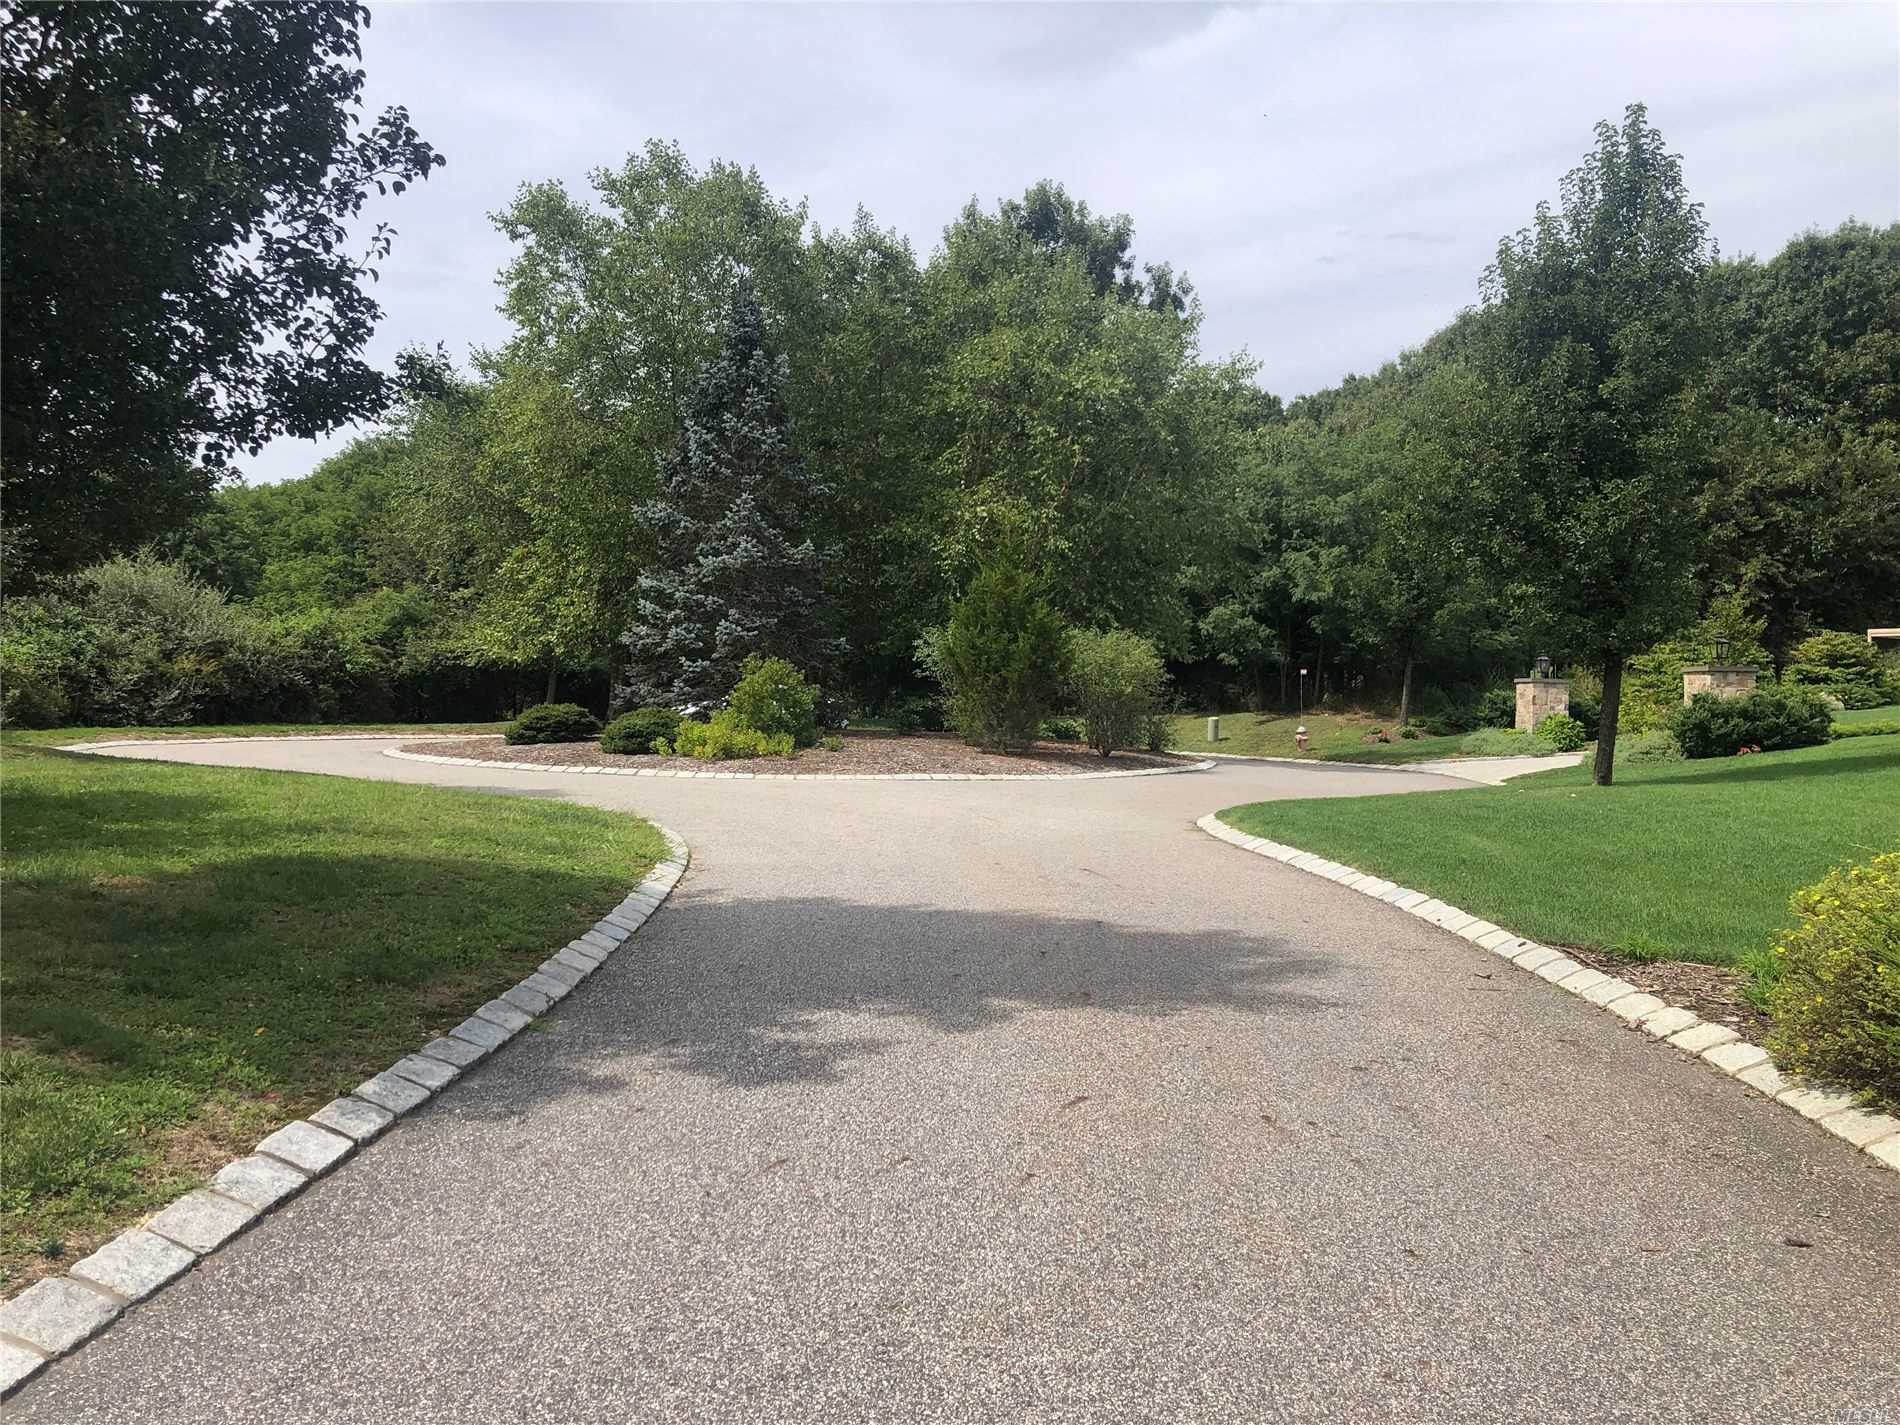 Build Your Dream Home On this 3.86 Acre Property on This Private Cu de Sac In Carrera Estates. Just minutes to all the North Fork of Long Island Has To Offer.